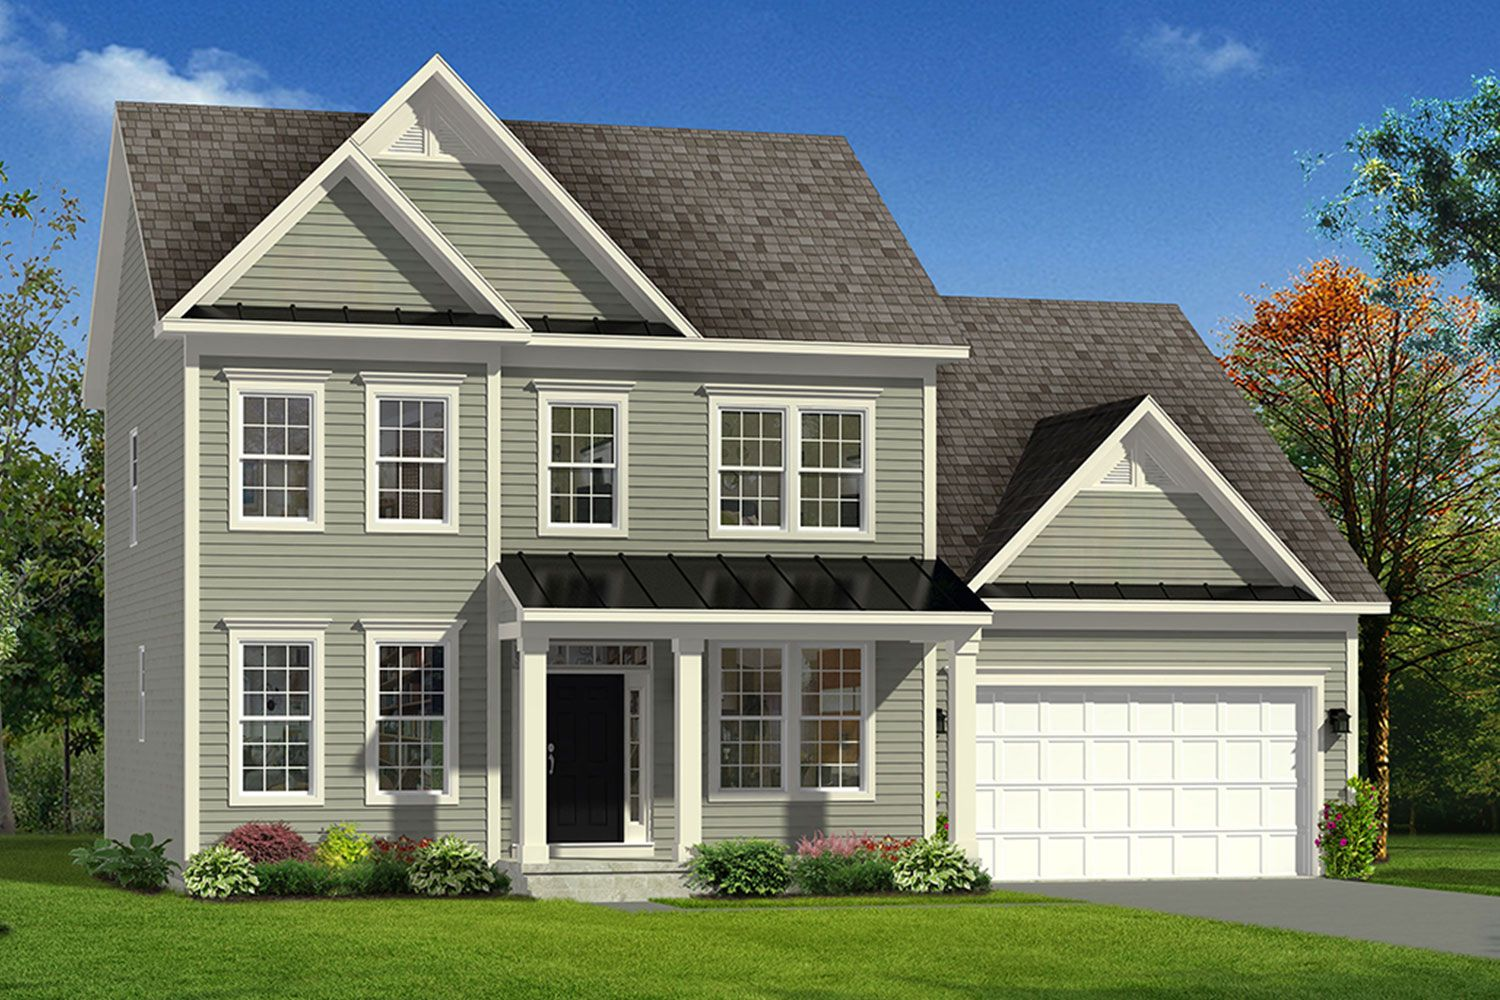 Single Family for Sale at Stonecrest - Fairfax Ii 14 Dogstreet Road Keedysville, Maryland 21756 United States